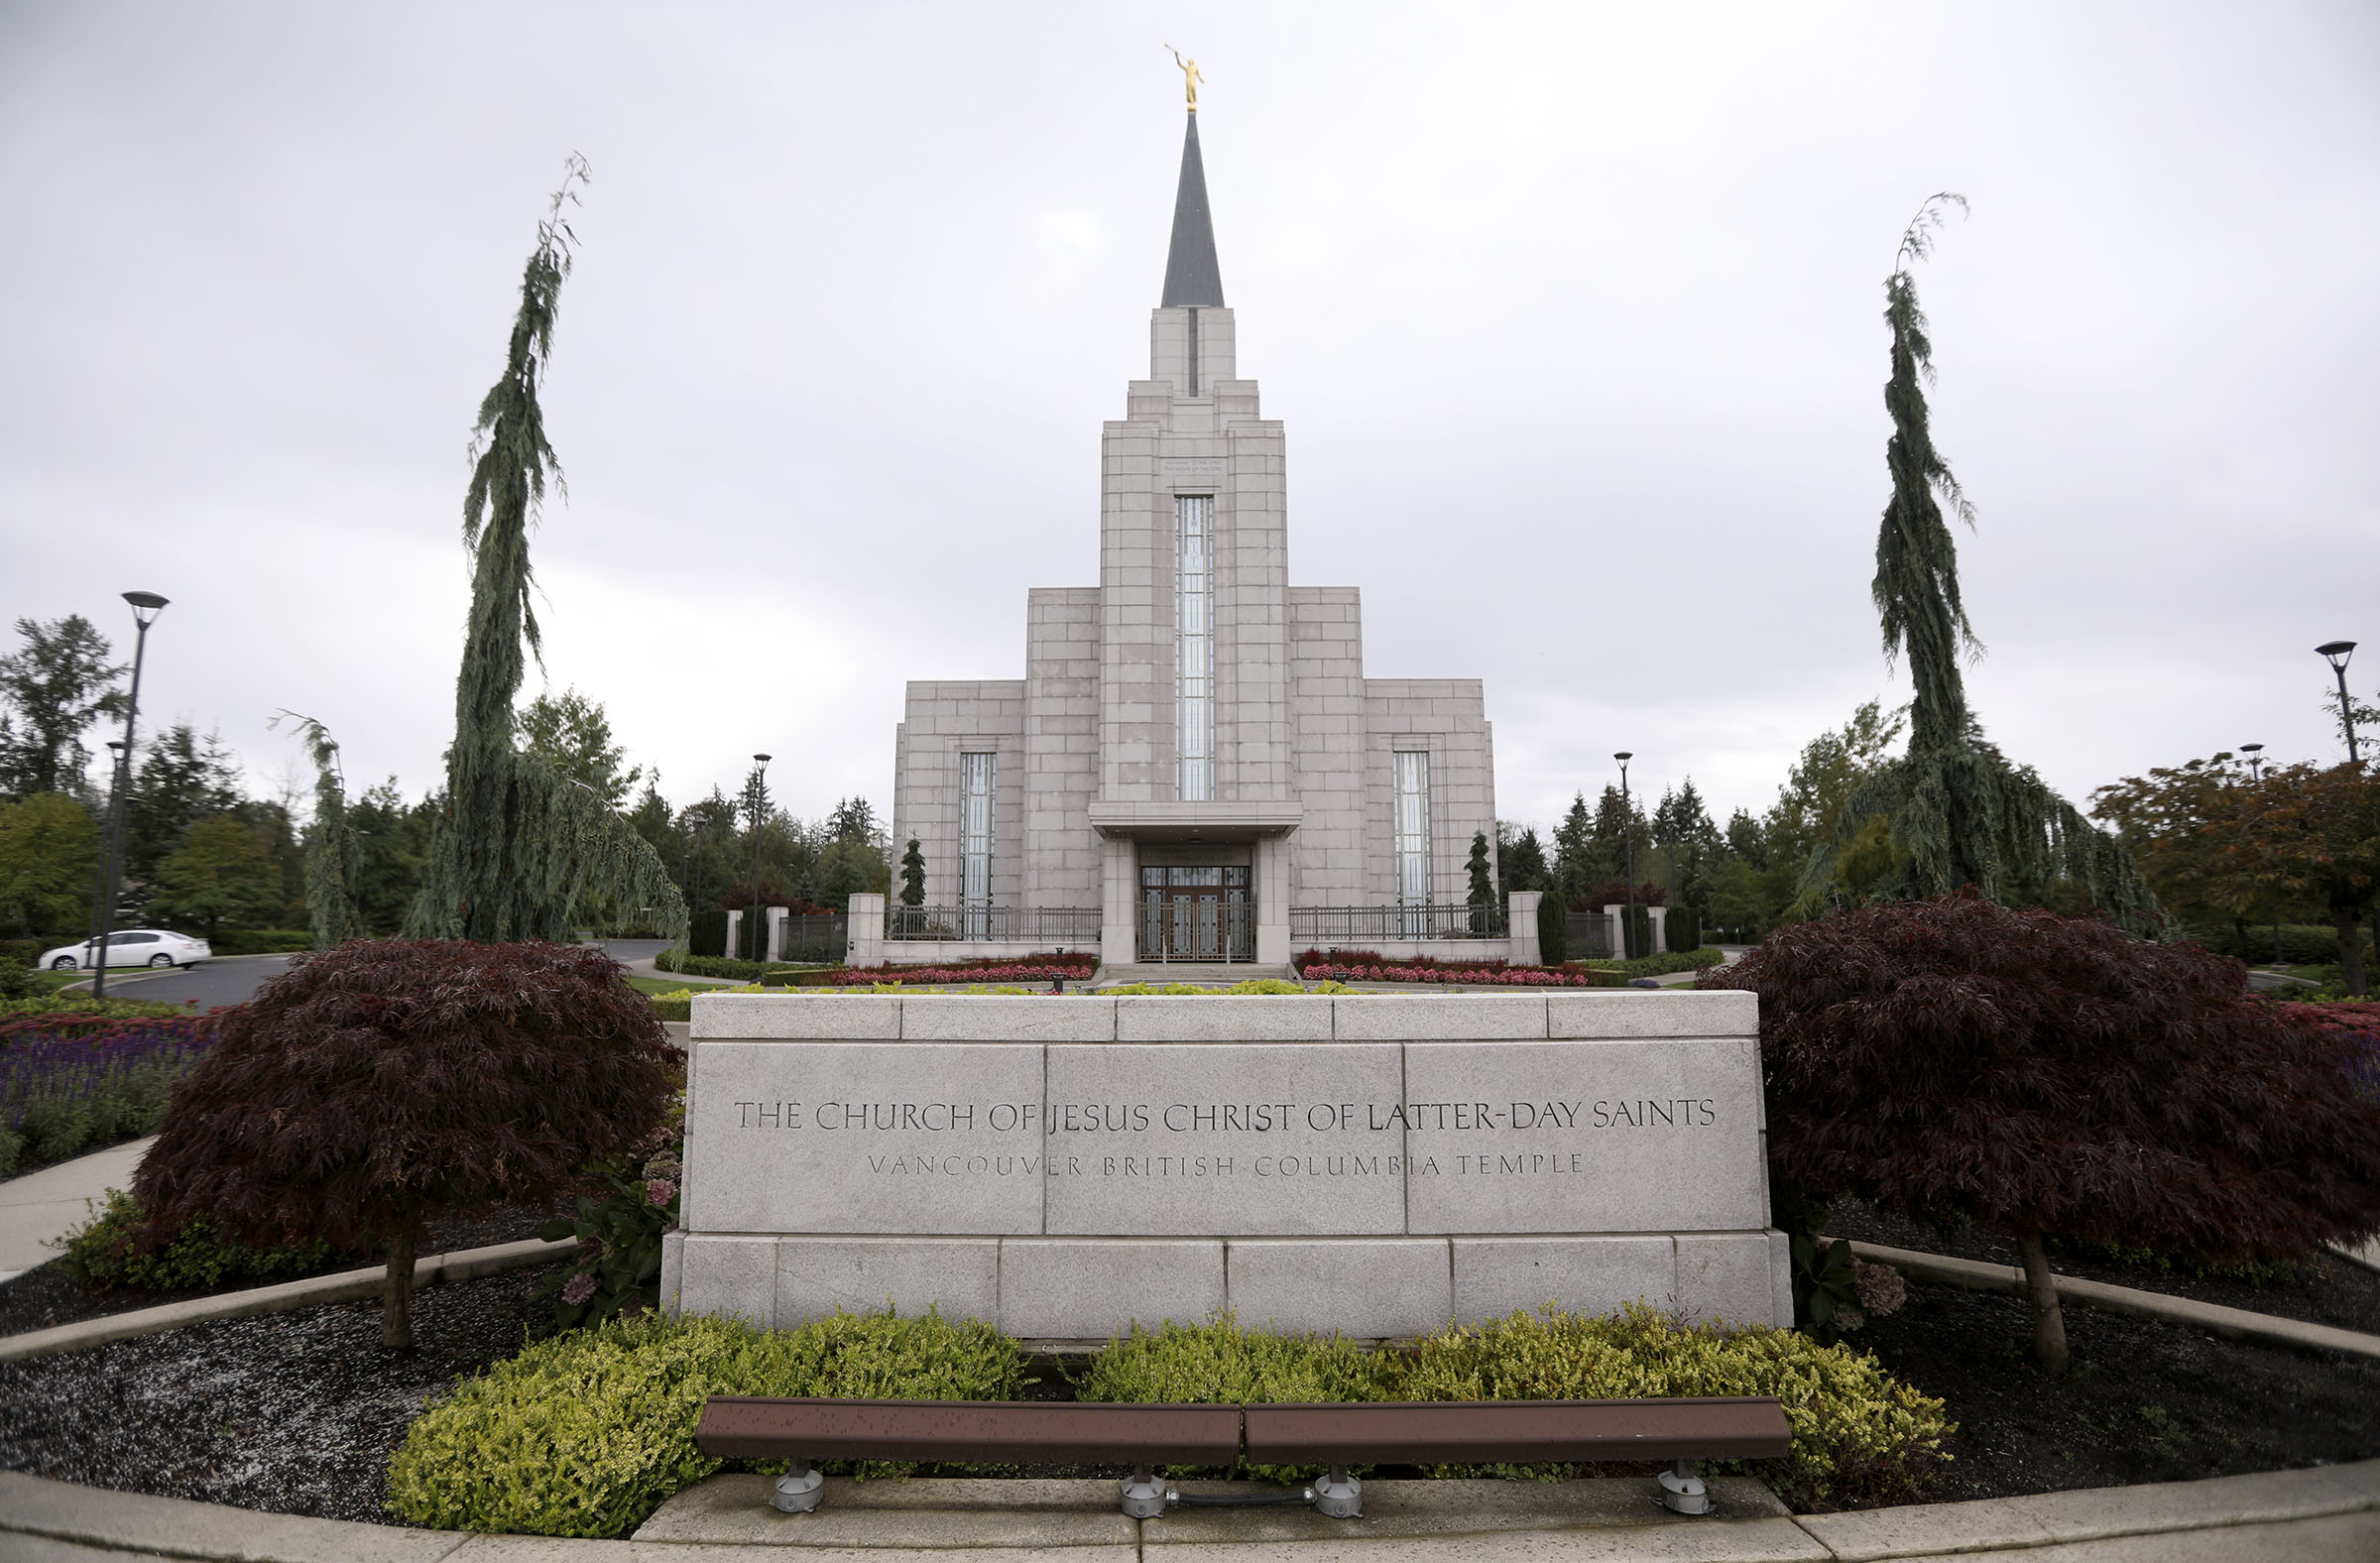 The Vancouver British Columbia Temple in Langley, British Columbia, on Sunday, Sept. 16, 2018.